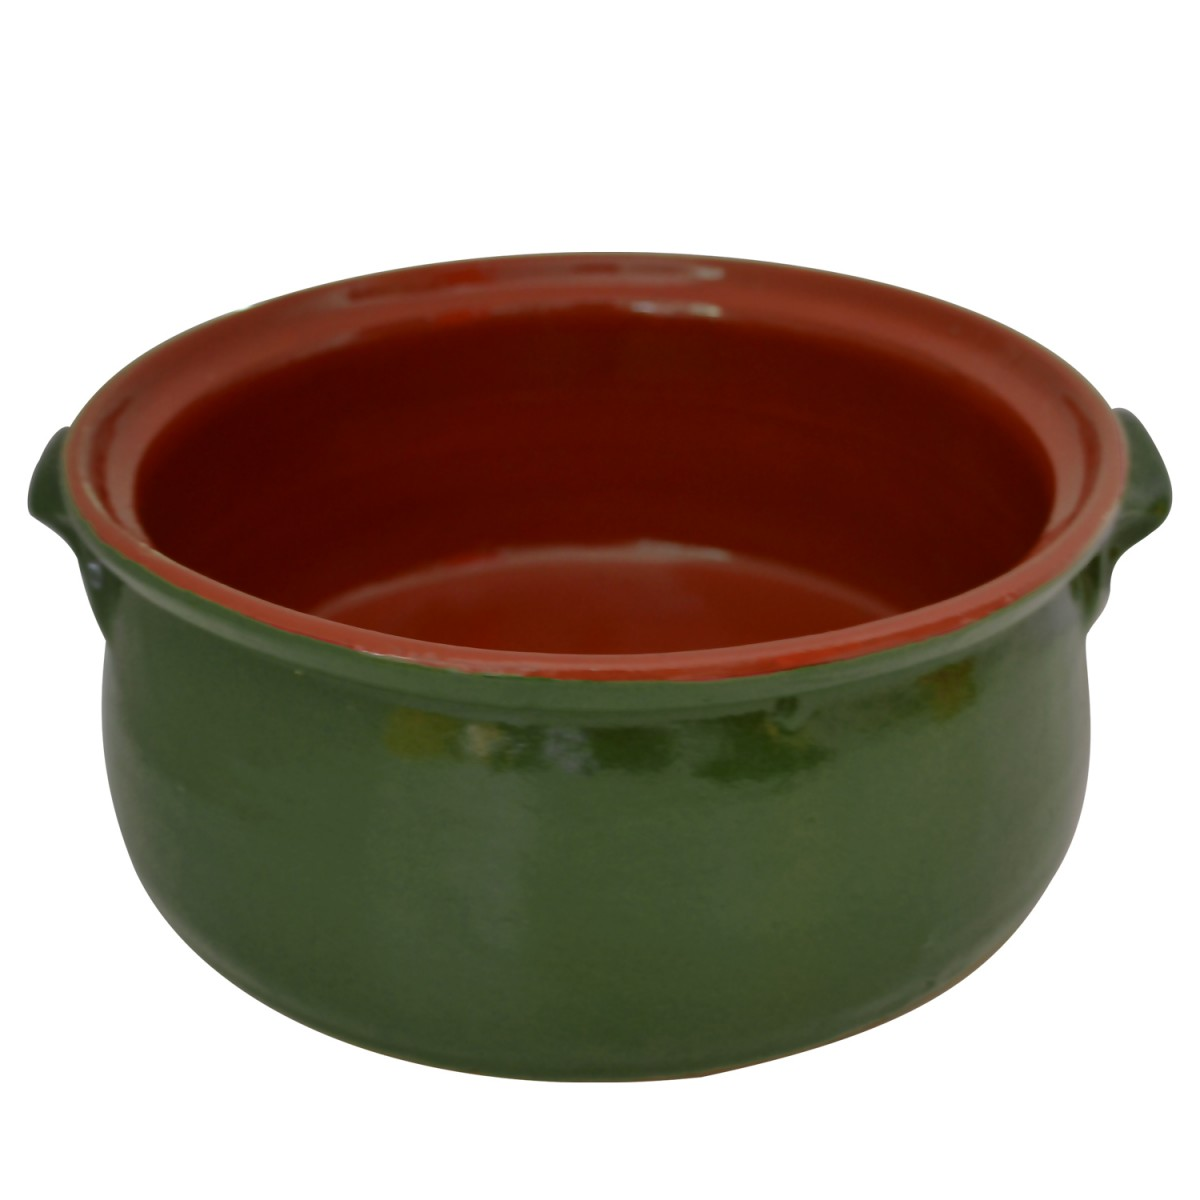 Olive Green Oven-Use Claypot-1